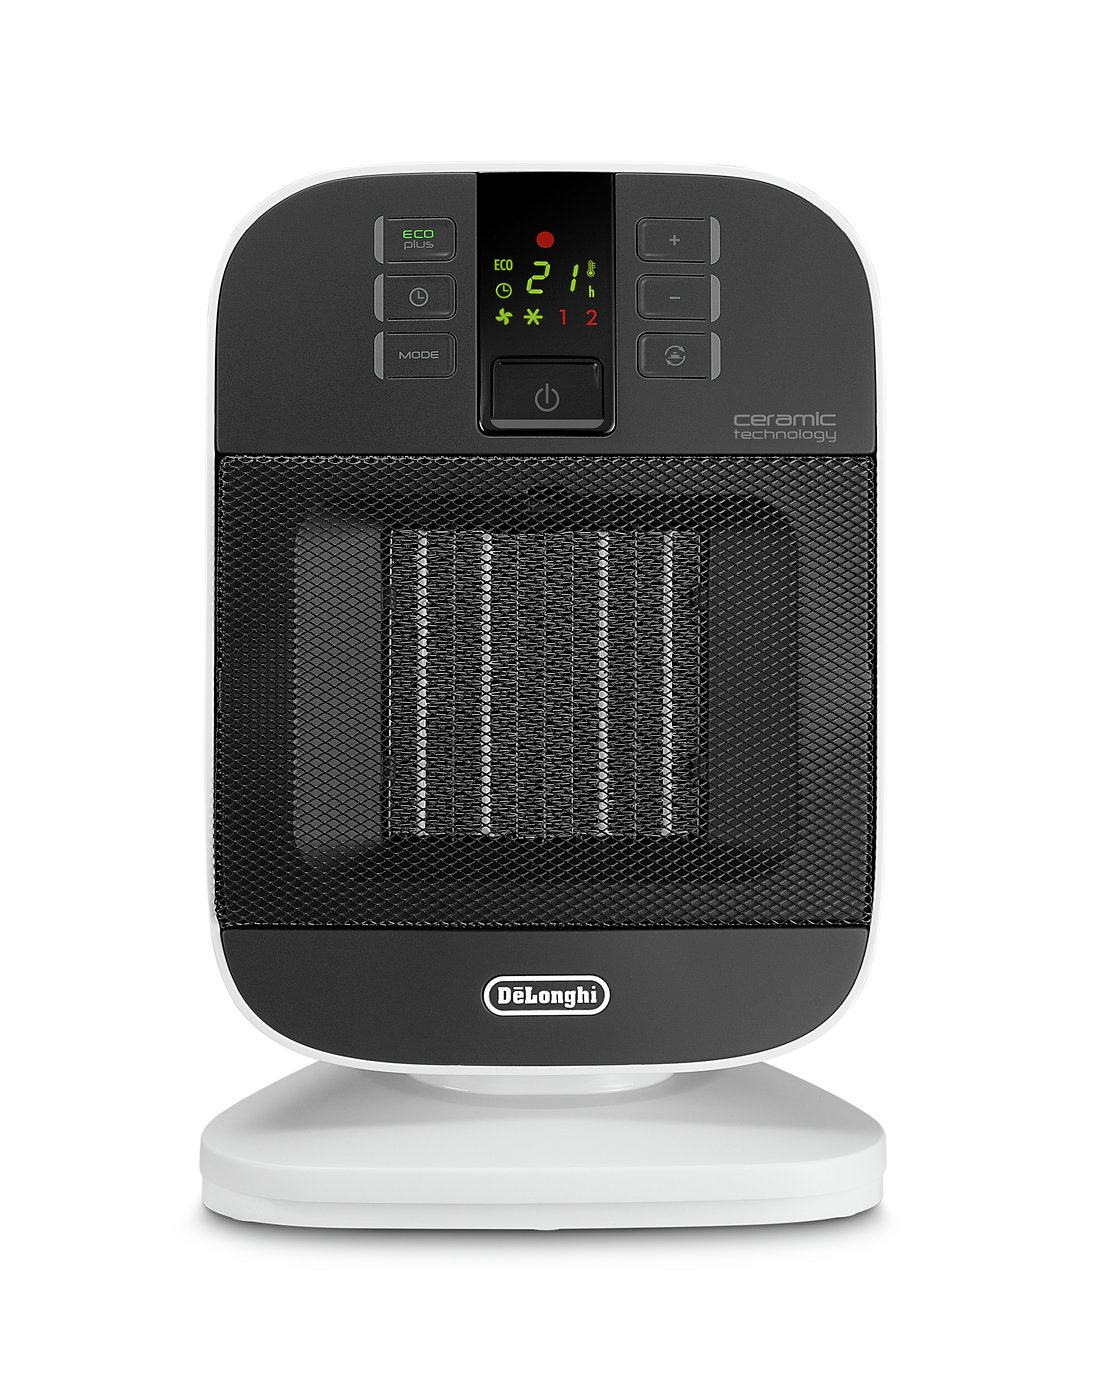 De'Longhi HFX60V20 Digital Oscillating Fan Heater